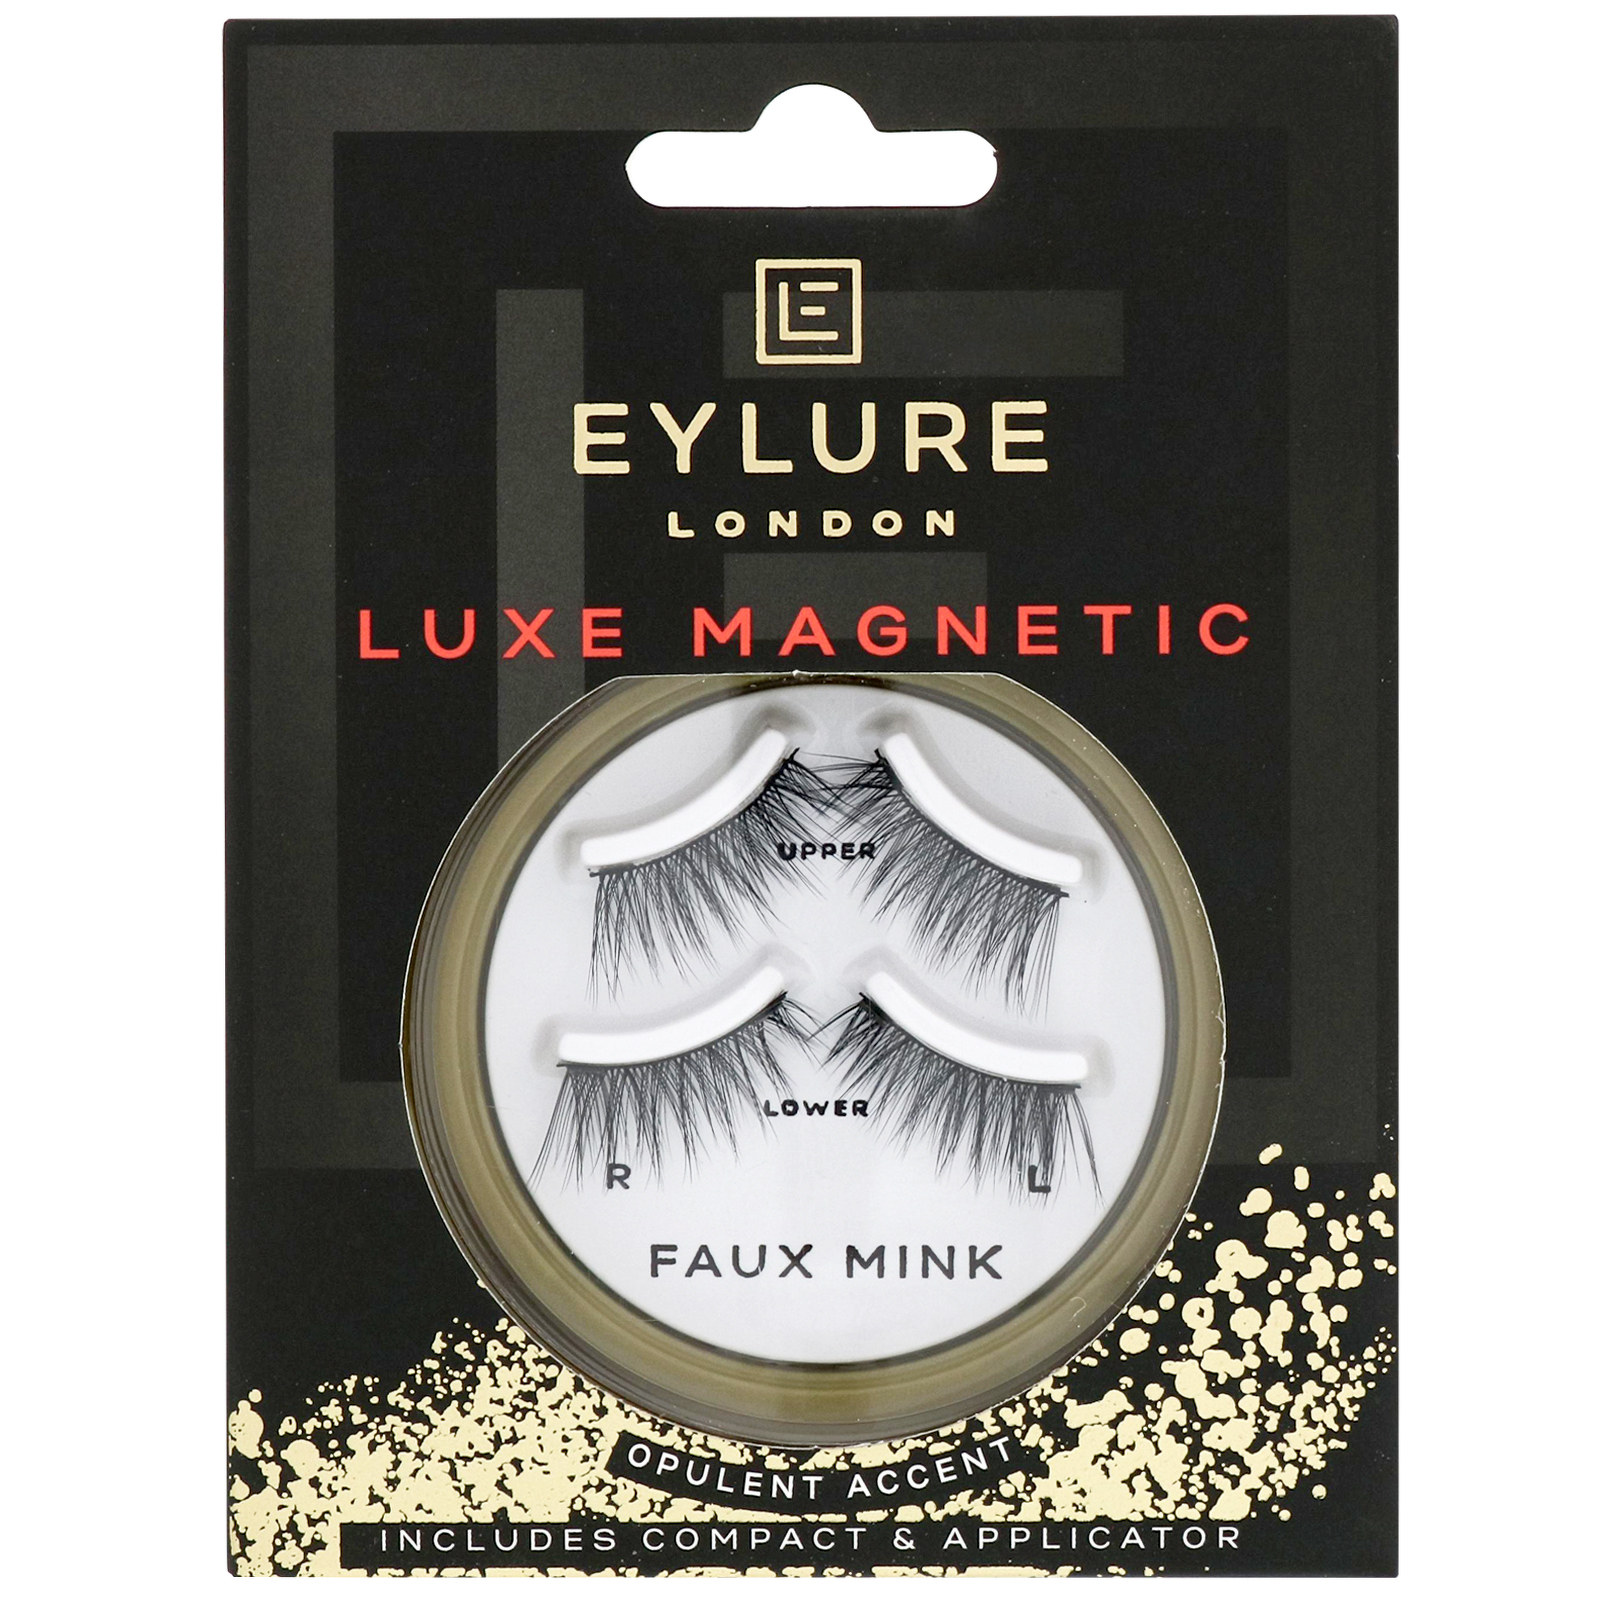 Eylure Luxe Magnetic Opulent Accent